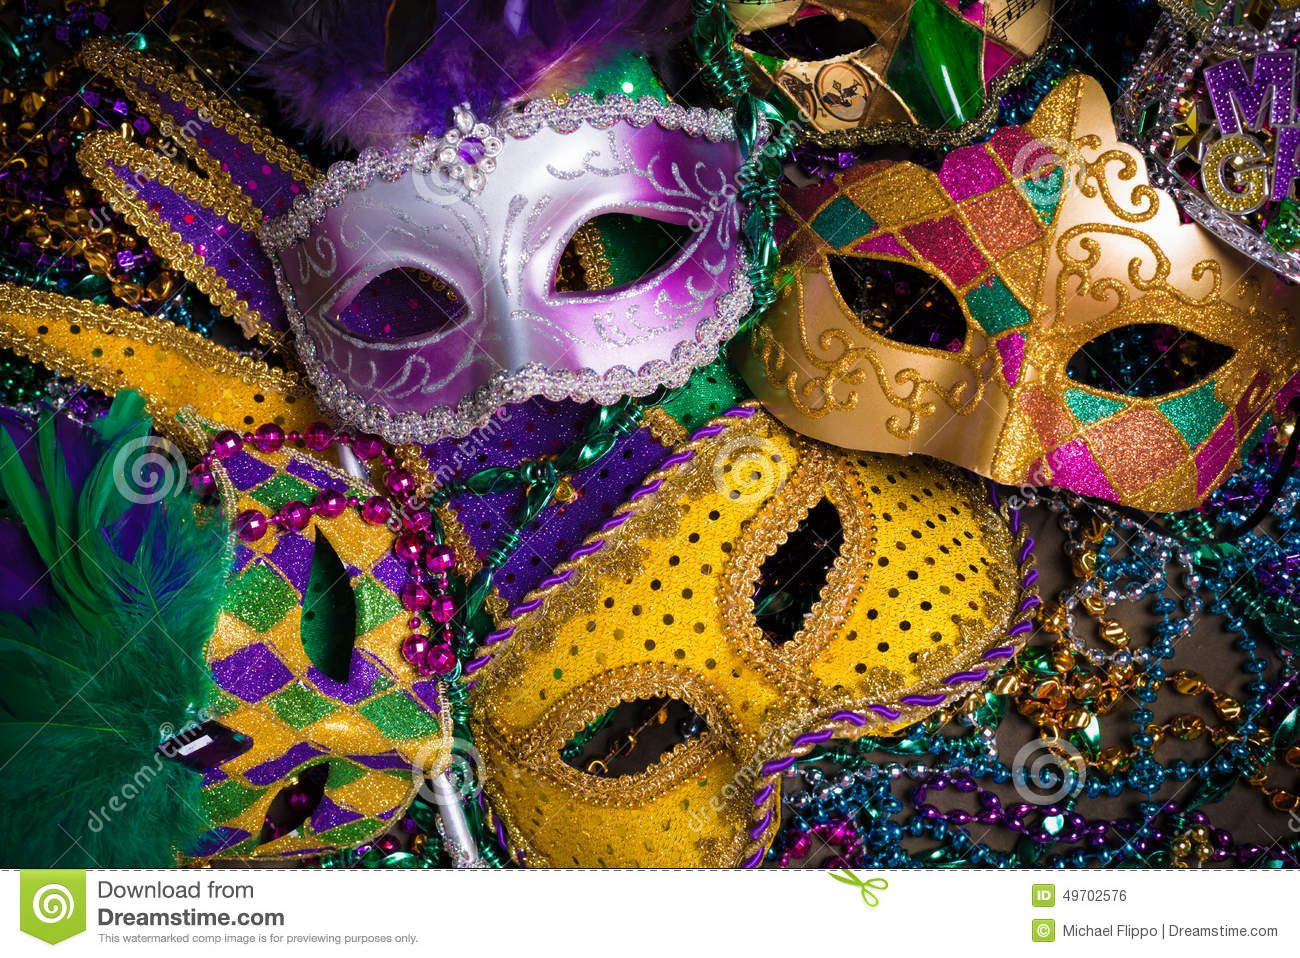 to loads mardi these carnival you vid secret know fast gras society scoring did beads facts of